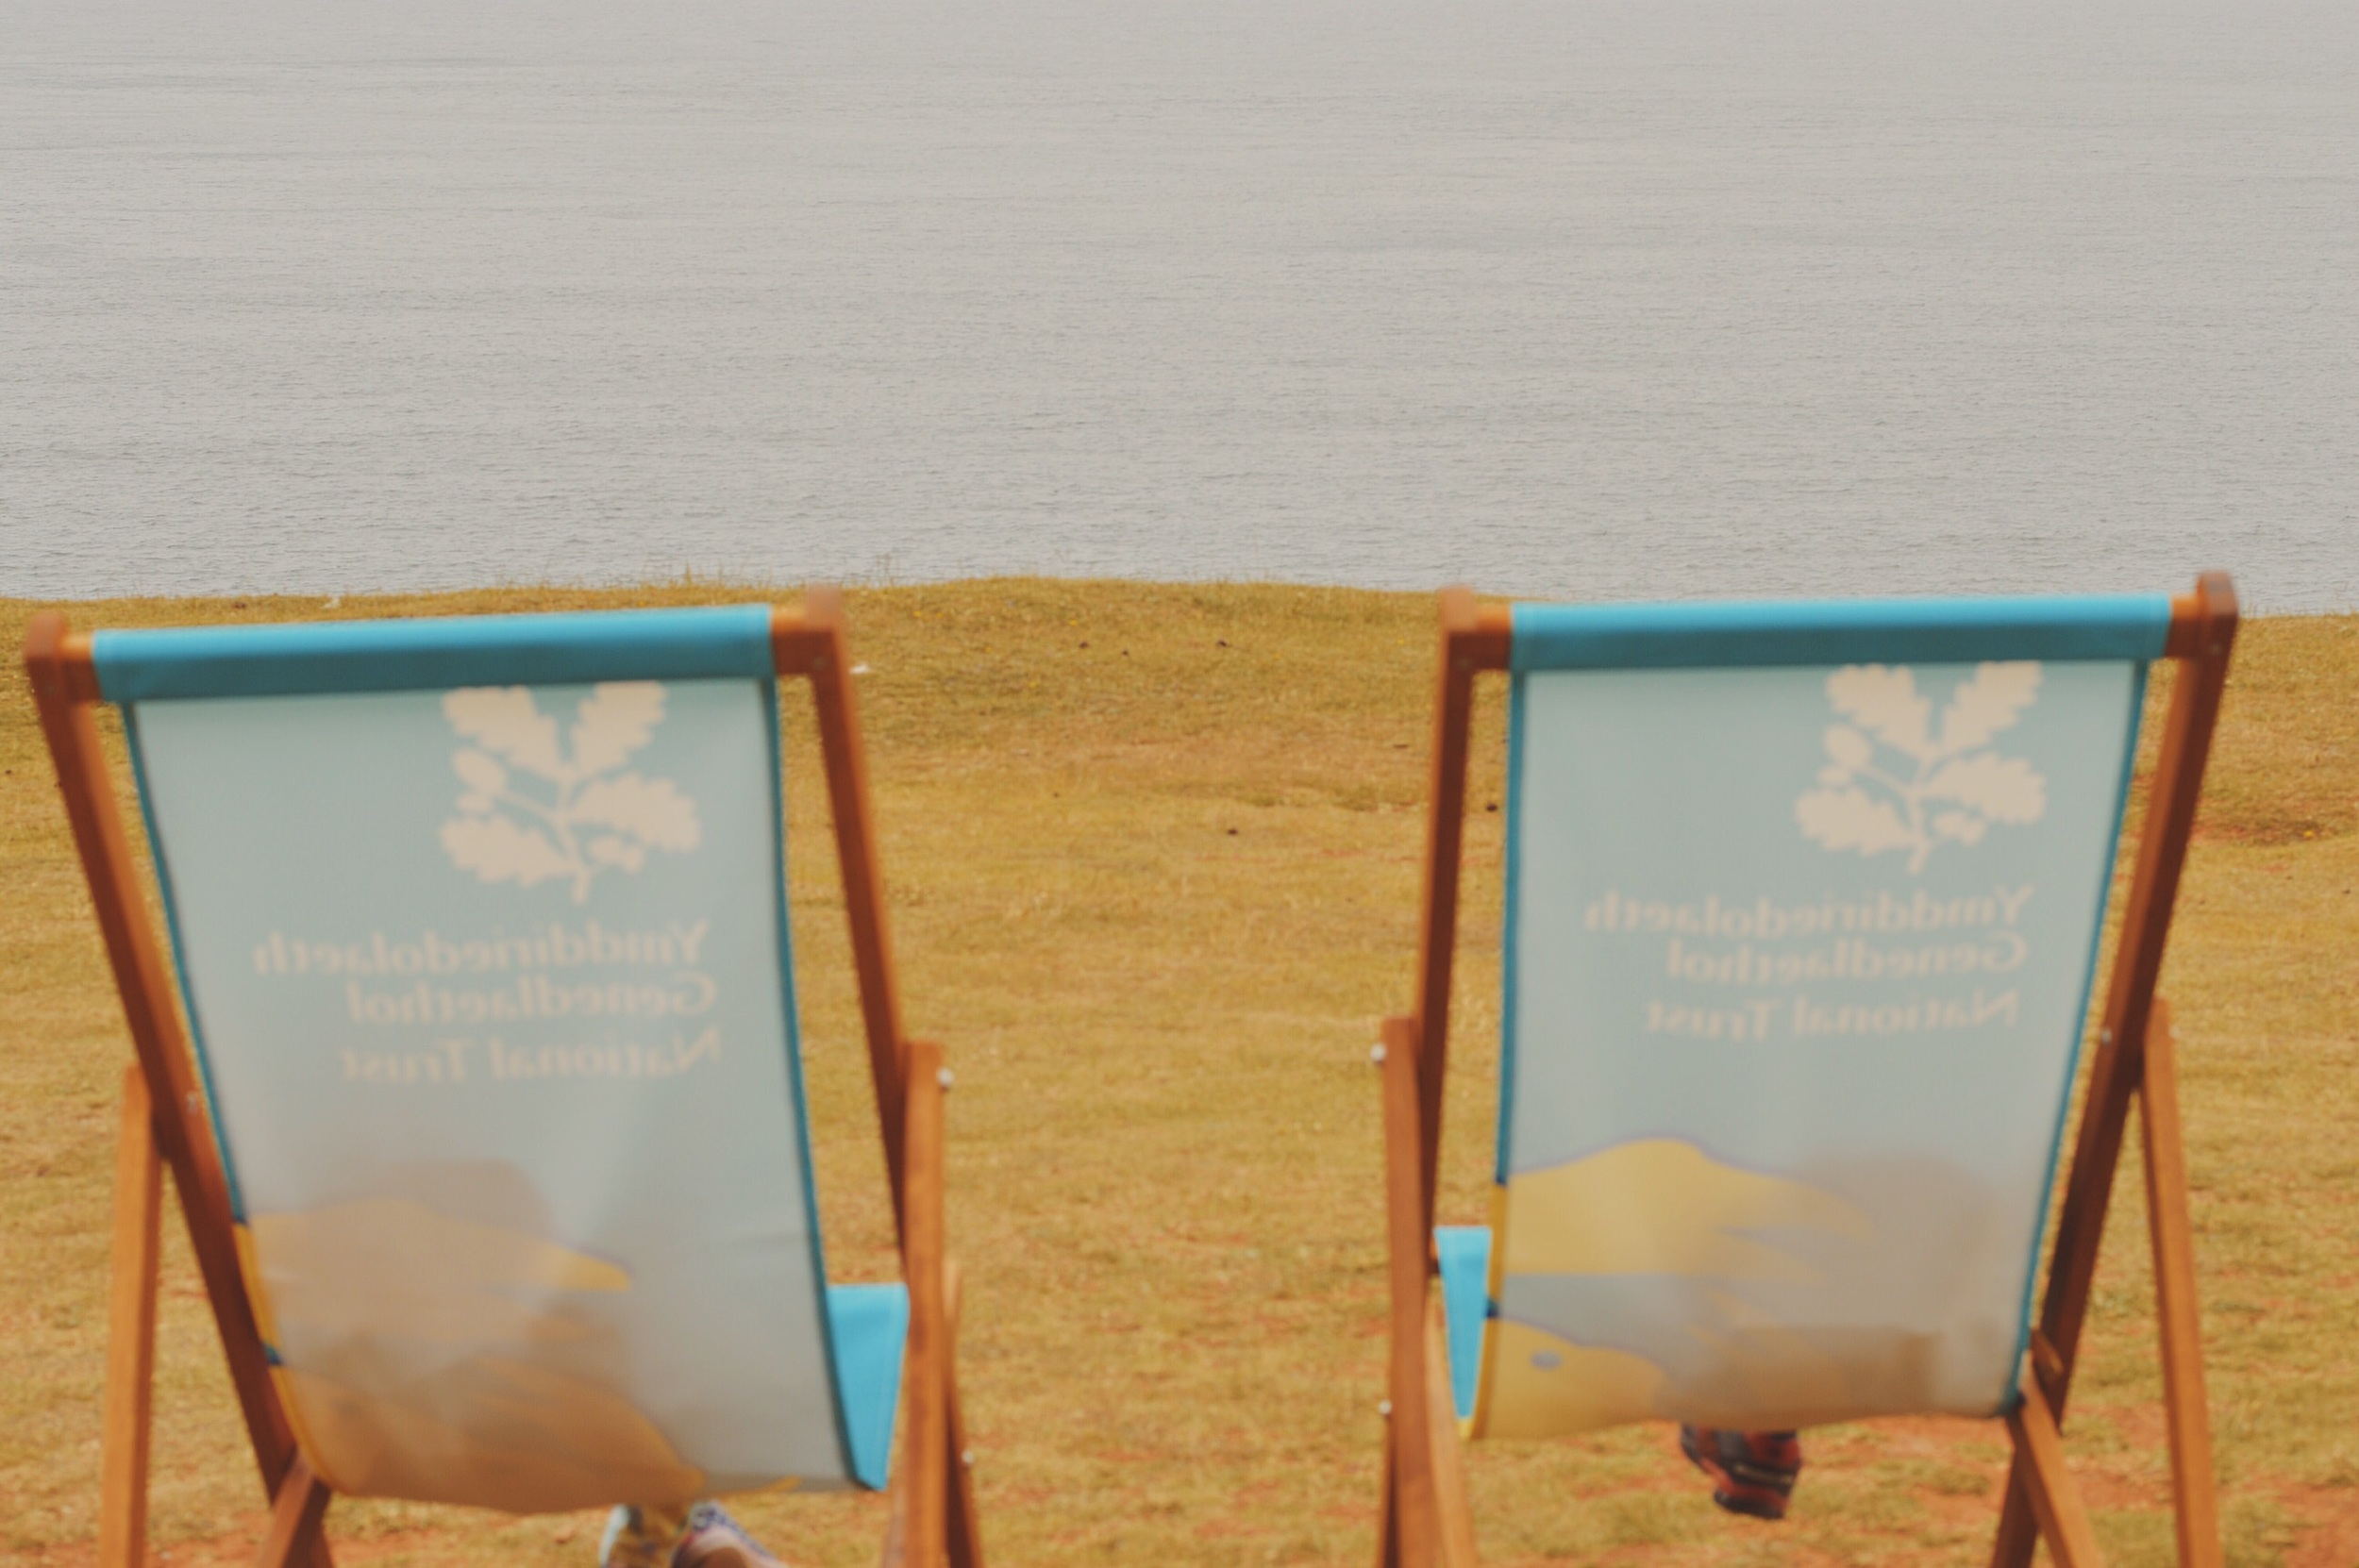 Lounging on the deckchairs at worms head.